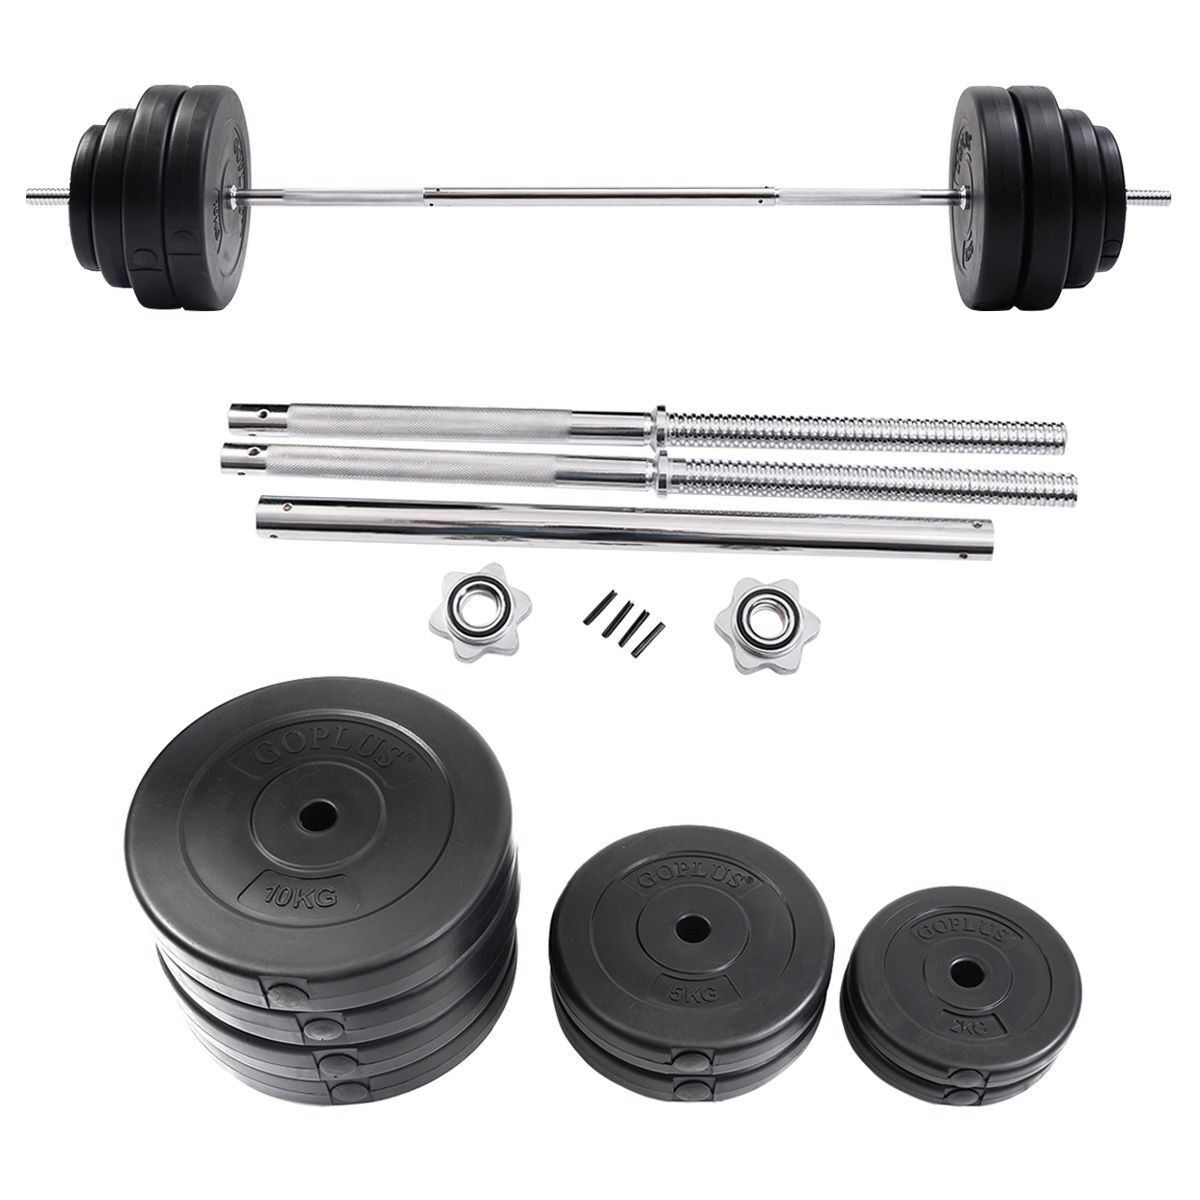 132lbs Pro  Gym Barbell Dumbbell Weight Set Gym Lifting Exercise Curl Bar Workout  wholesale price and reliable quality